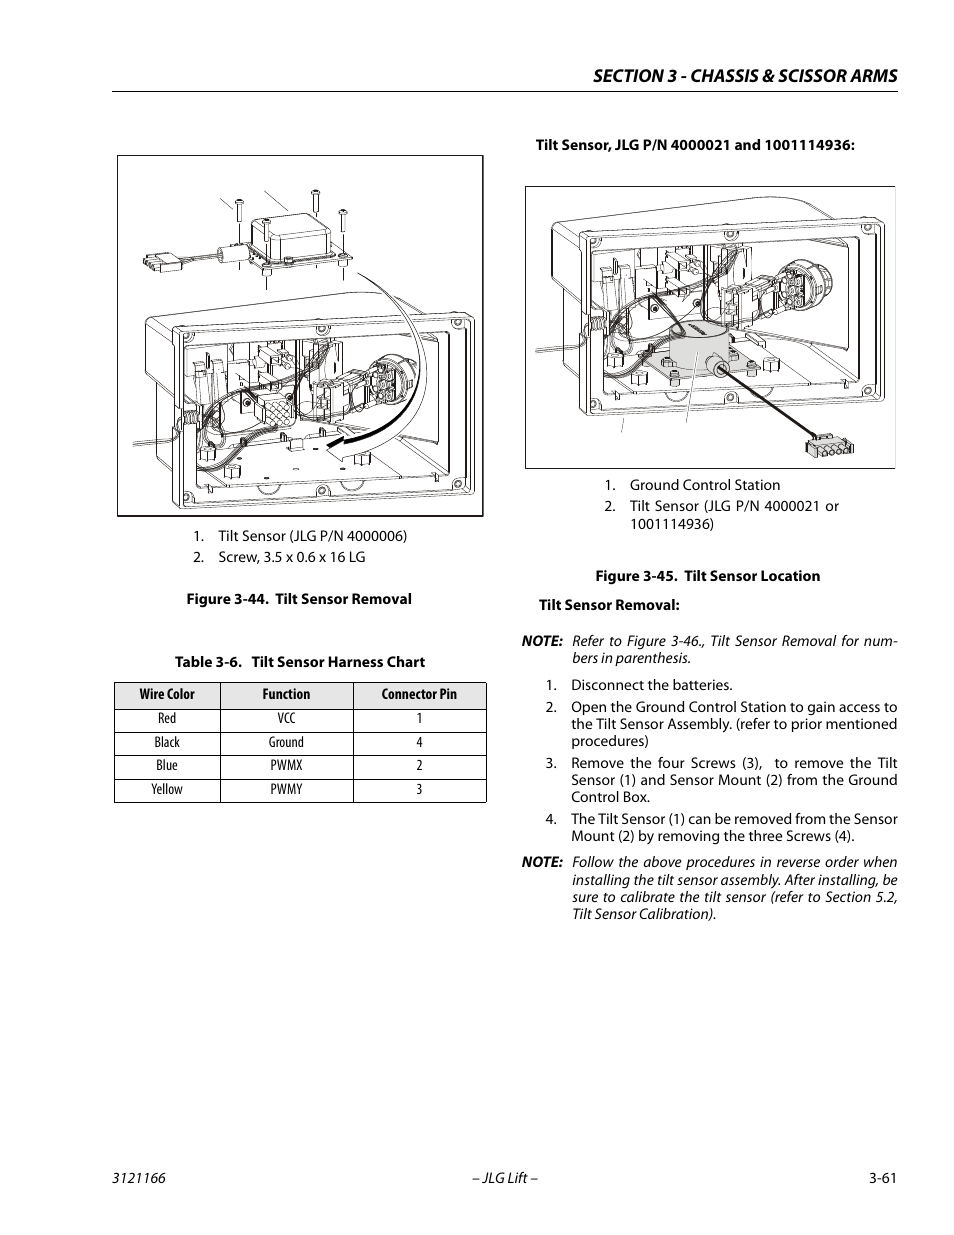 hight resolution of tilt sensor removal 61 tilt sensor location 61 tilt sensor harness chart 61 jlg 3246es service manual user manual page 97 222